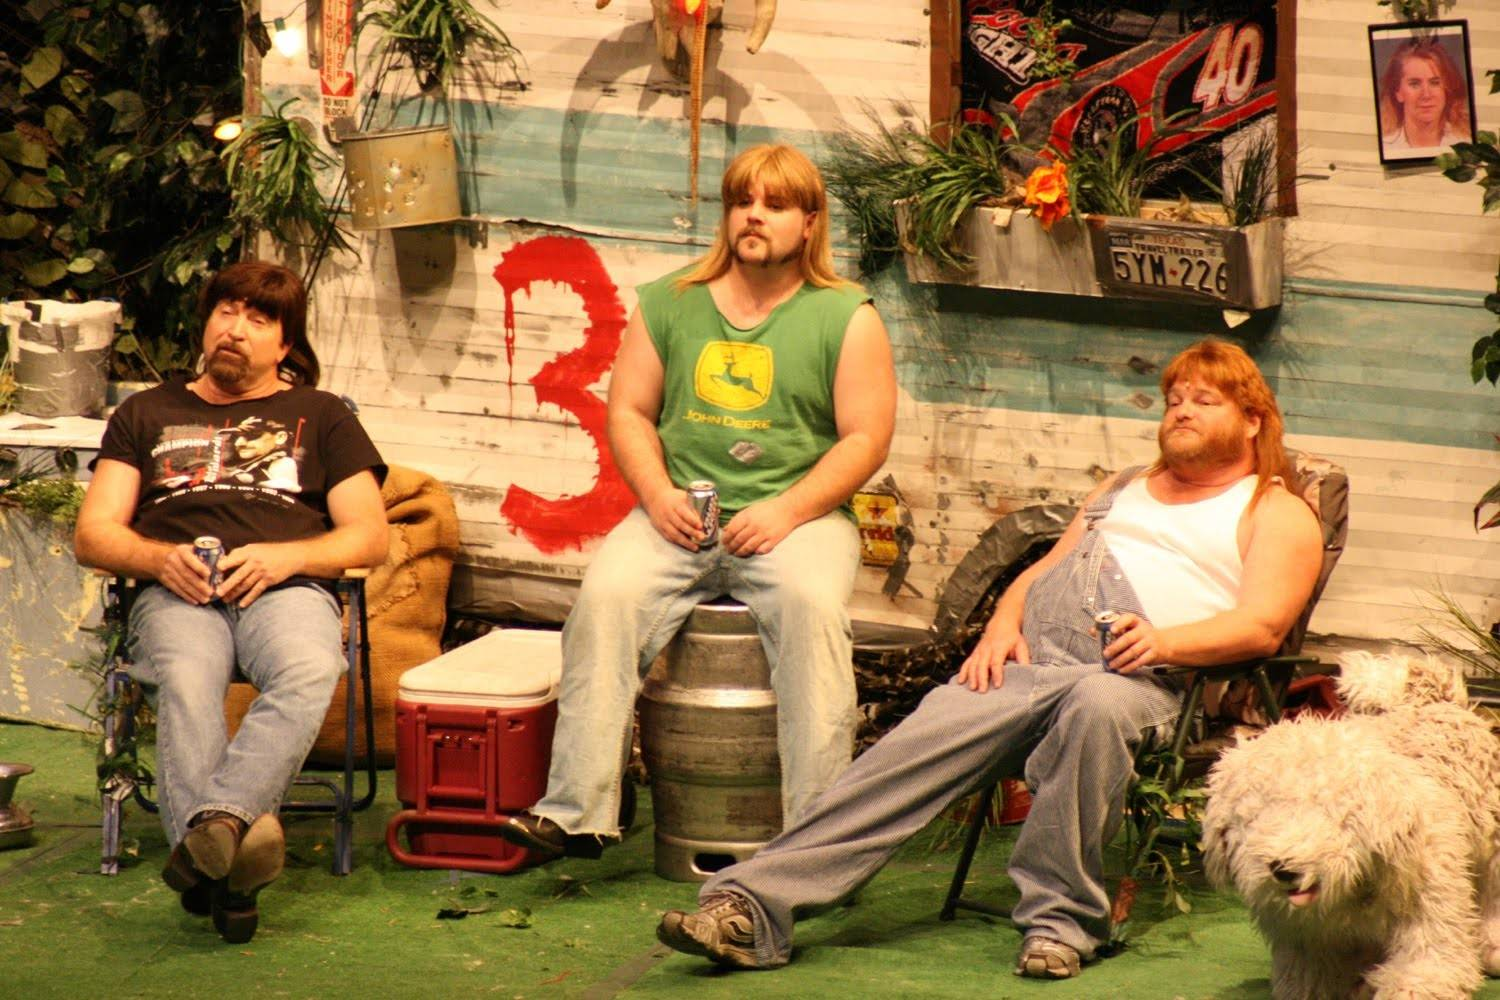 3 Redneck Tenors plays the Paramount Theatre in Aurora on Friday, May 16.